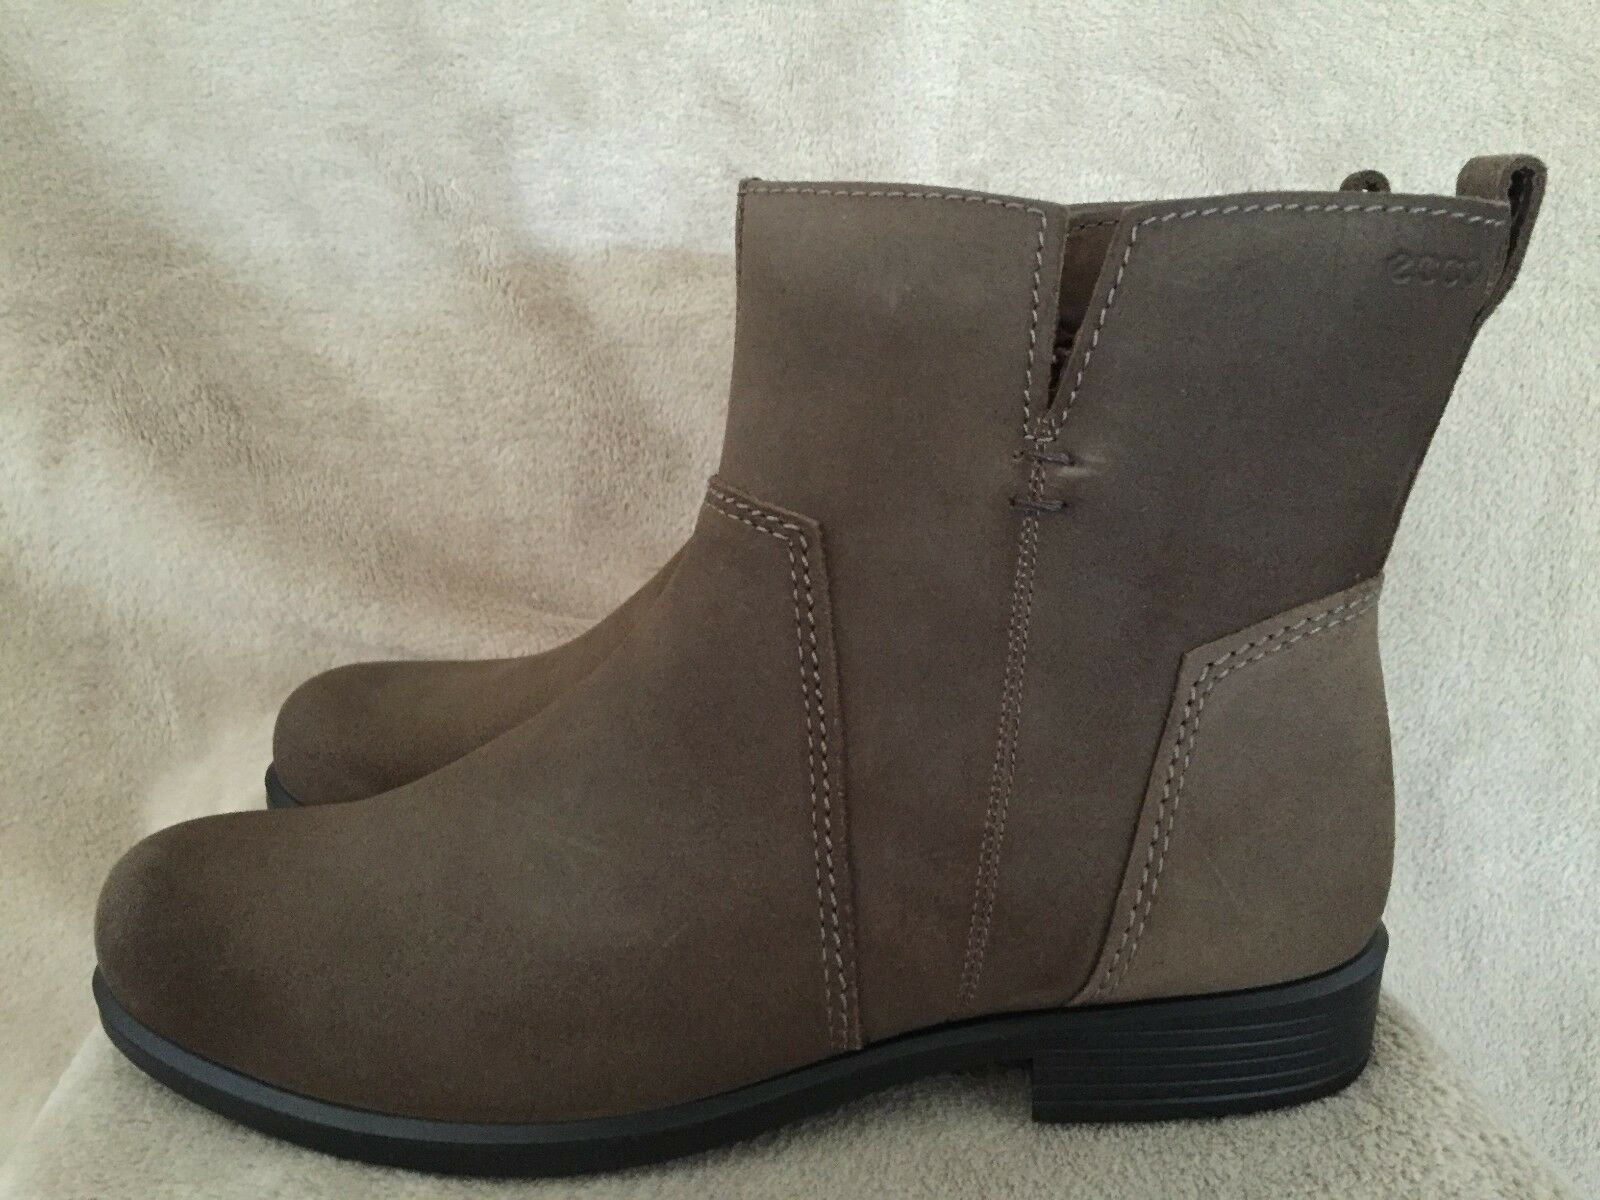 ECCO ECCO ECCO Touch 25 B Mid Cut Suede Leather Ankle Boots shoes US 9 - 9.5 M EUR 40 NWB f3f239